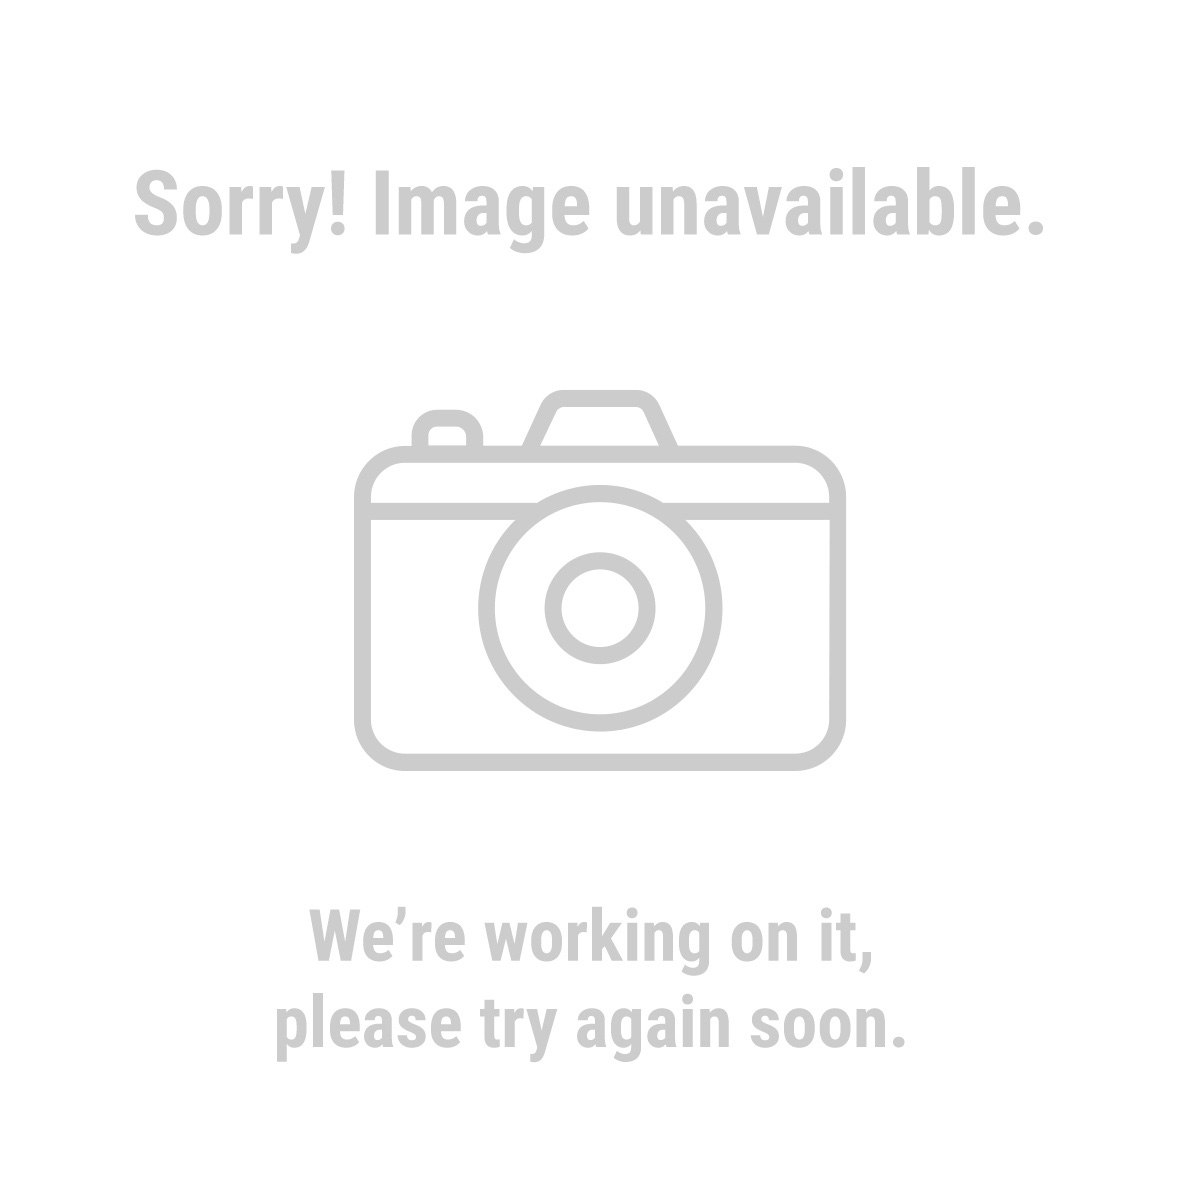 Predator Outdoor Power Equipment 62214 3100 PSI, 2.8 GPM, 6.5 HP (212cc) Pressure Washer CARB